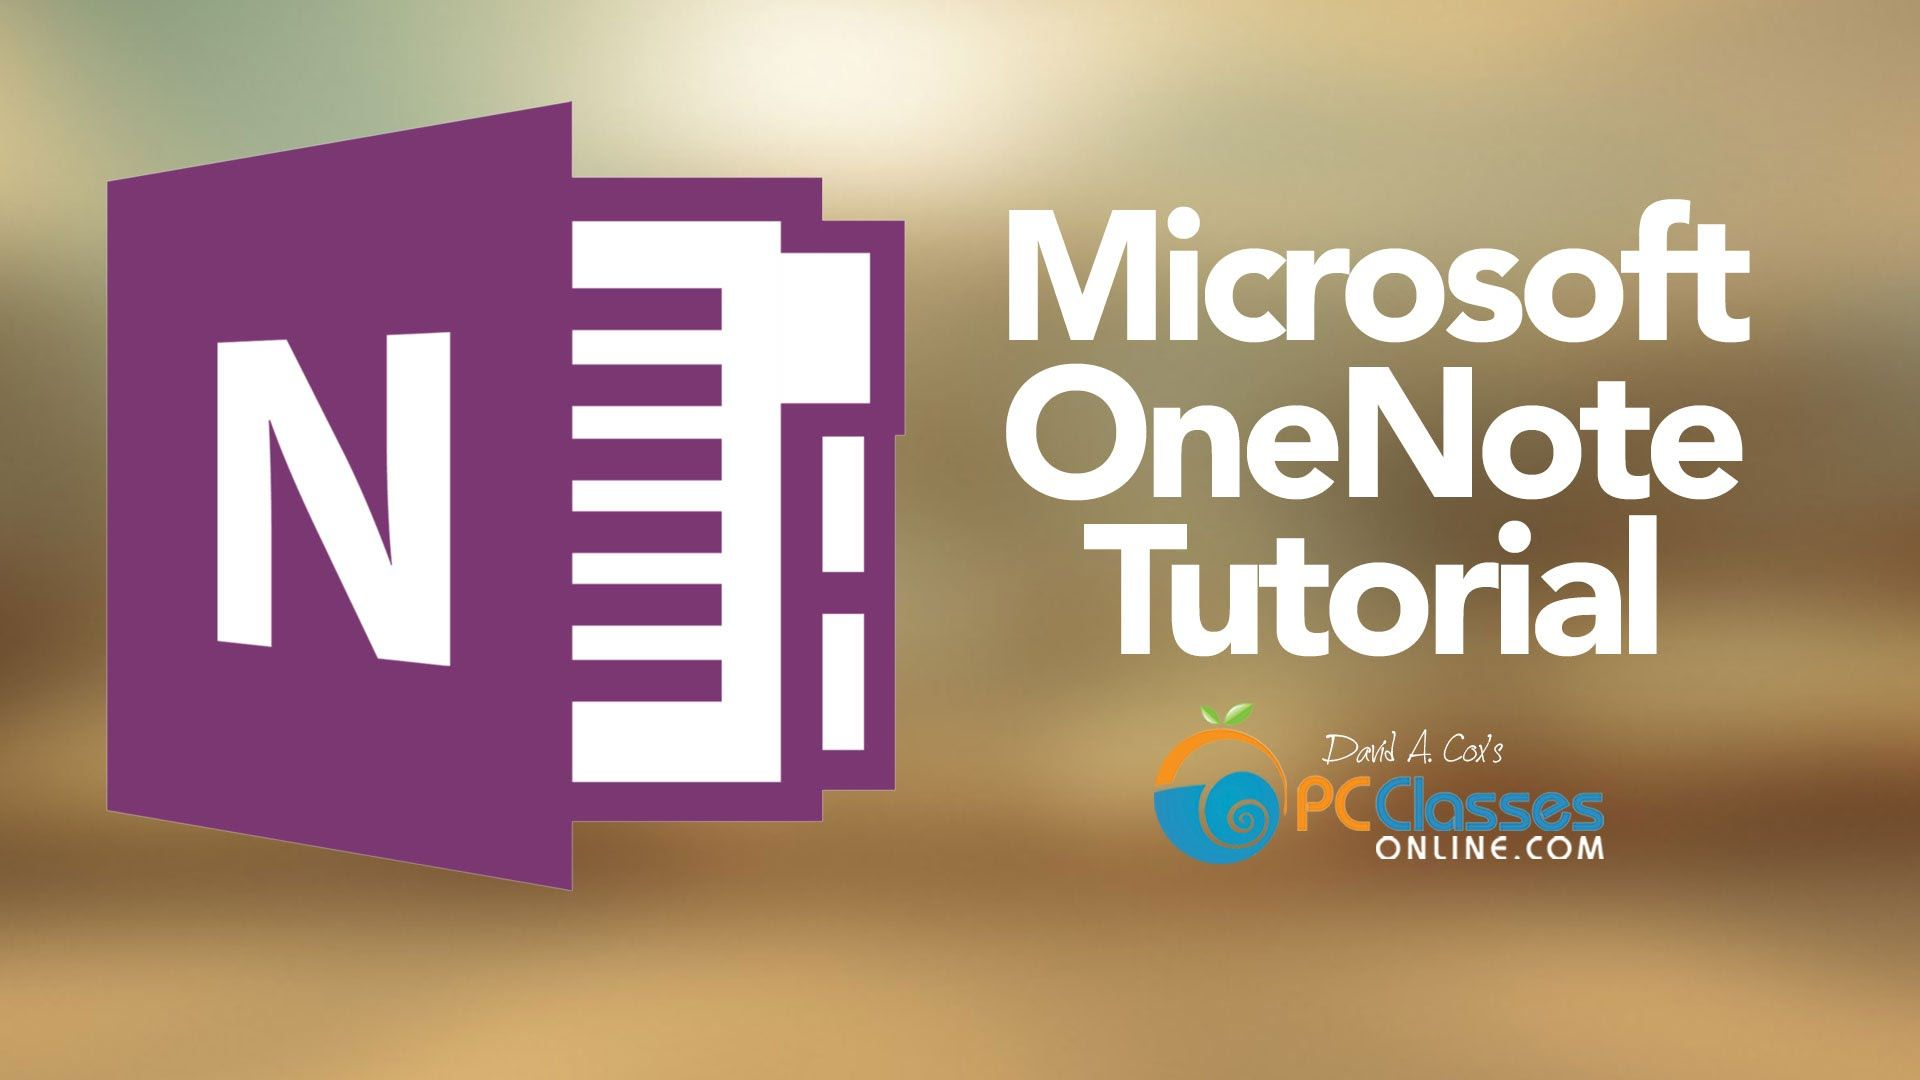 Microsoft OneNote is a free application available for Mac